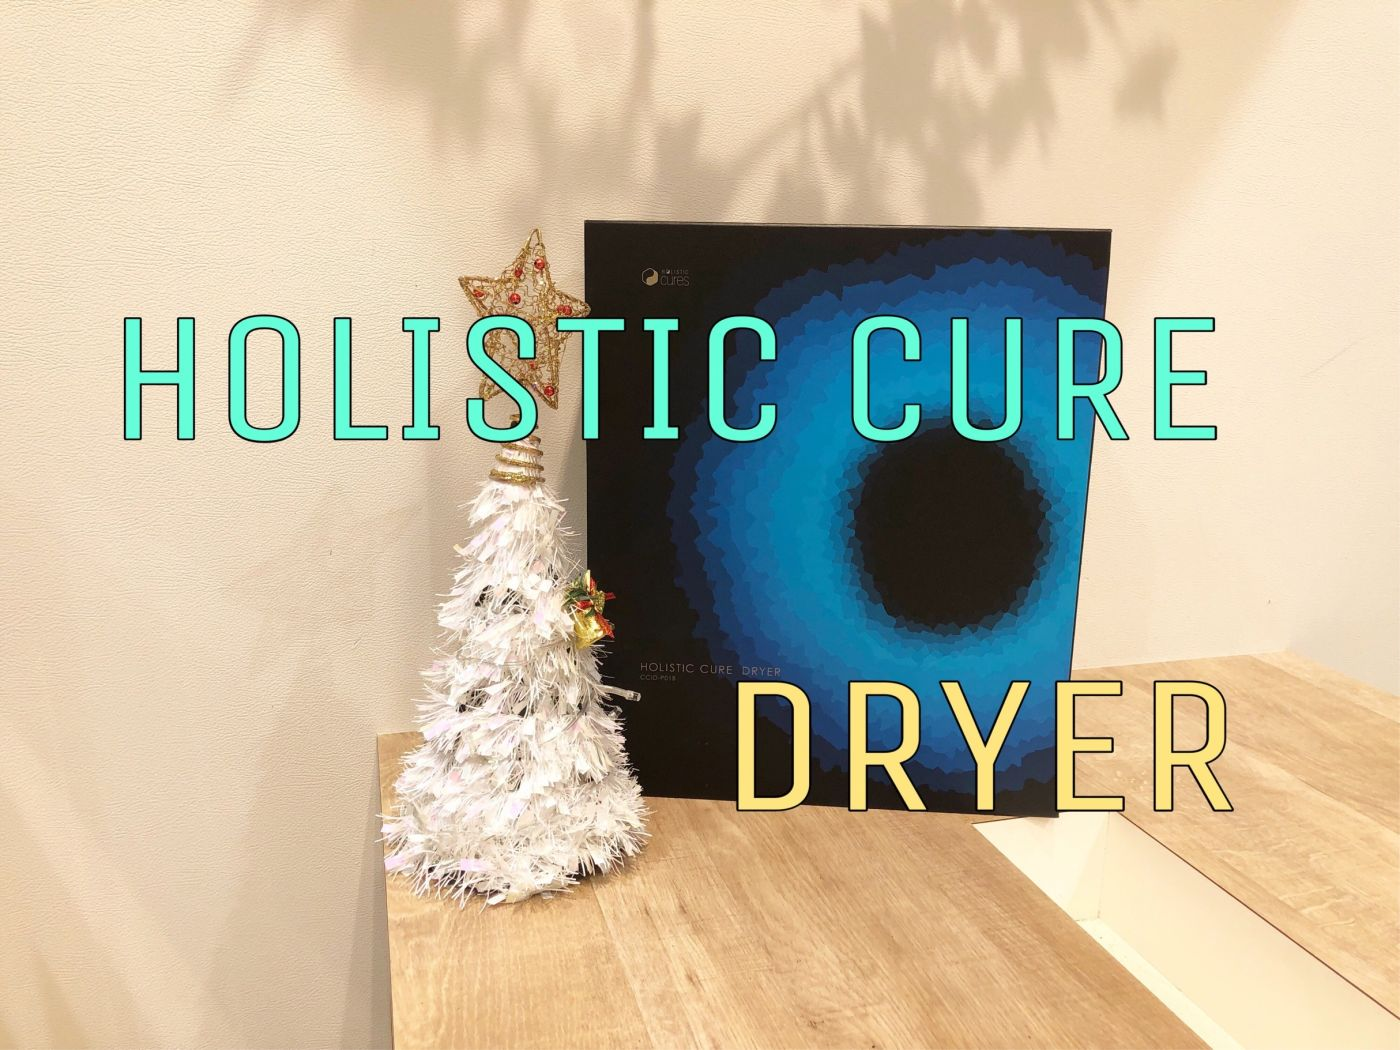 1.HOLISTIC CURE DRYER